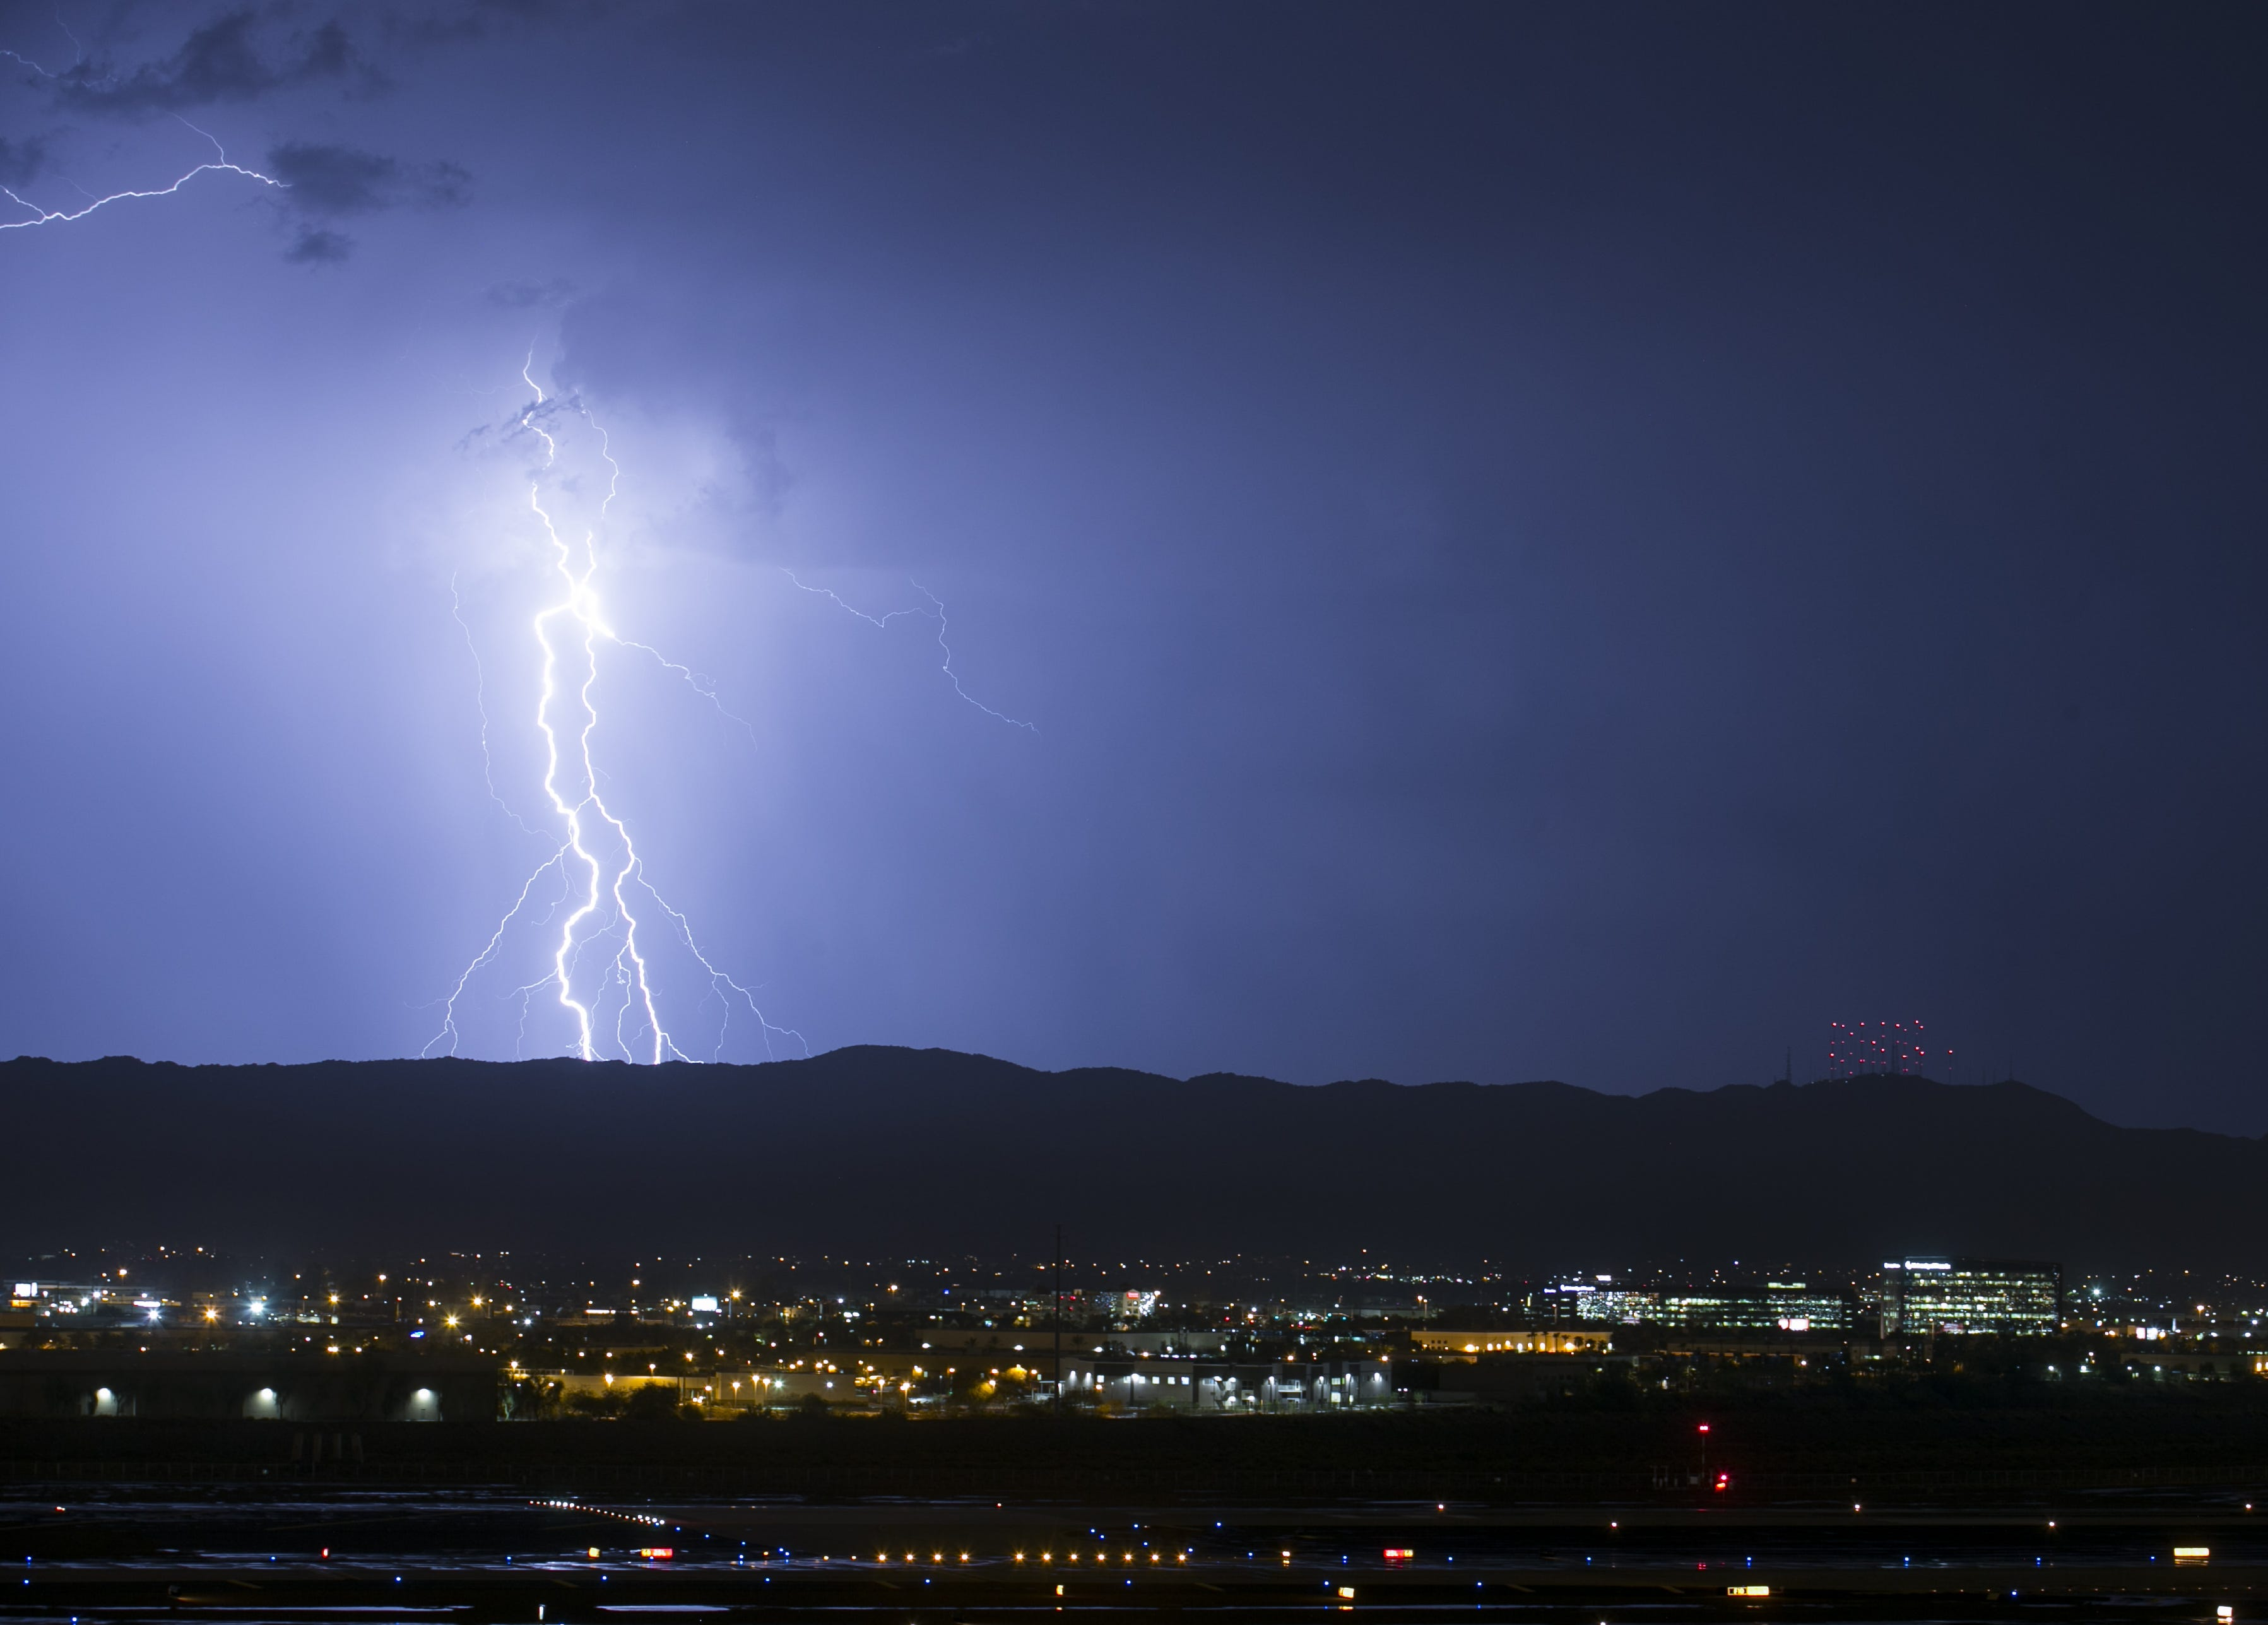 Latest monsoon storm soaks Tempe, dropping 3.6 inches of rain in about an hour | Arizona Central